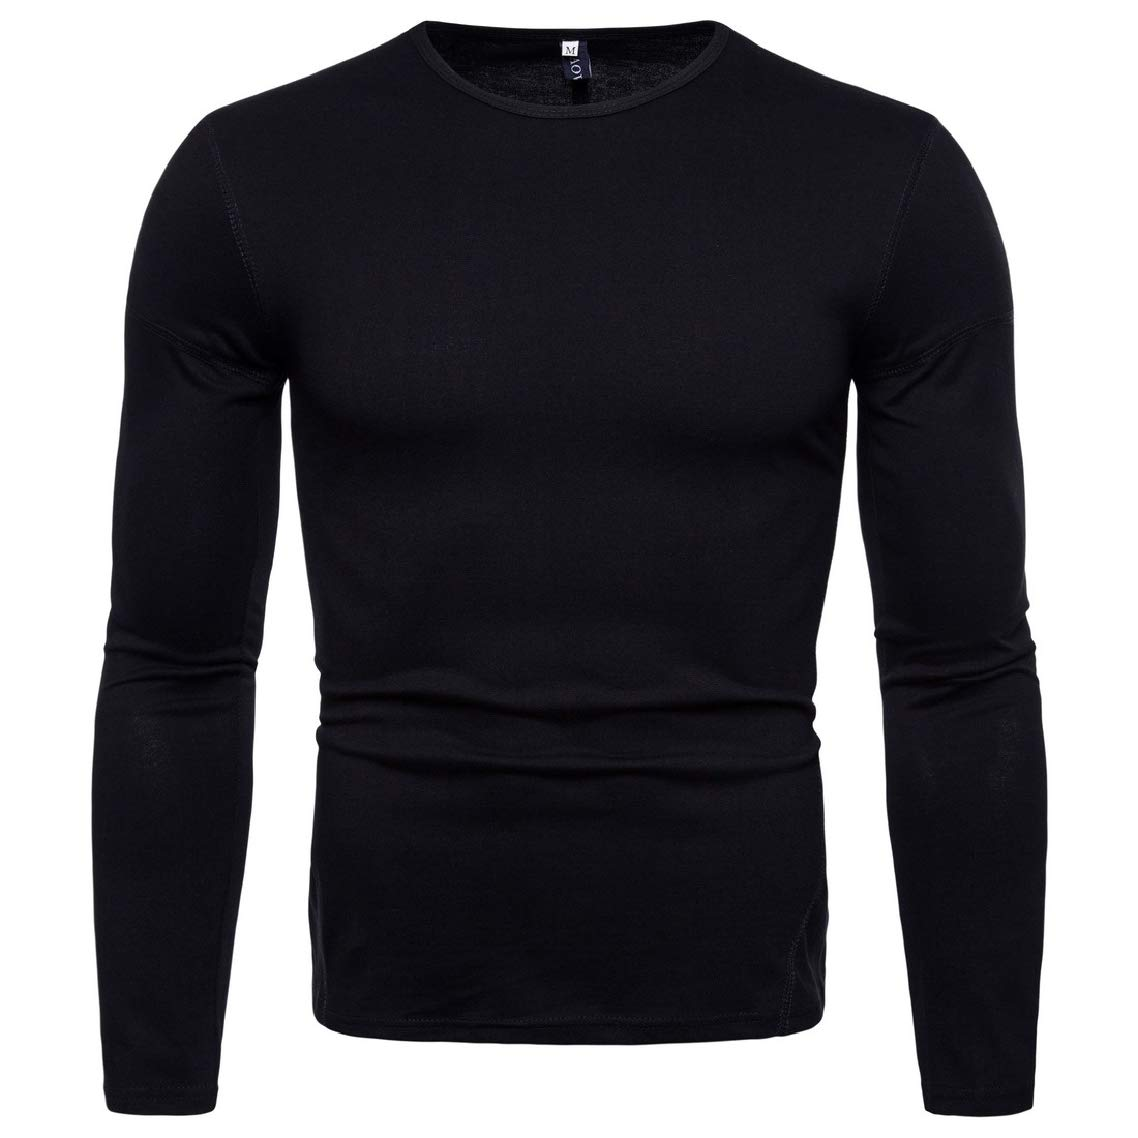 GodeyesMen Comfort O-Neck Long Sleeves Solid Cotton Polo T-Shirts